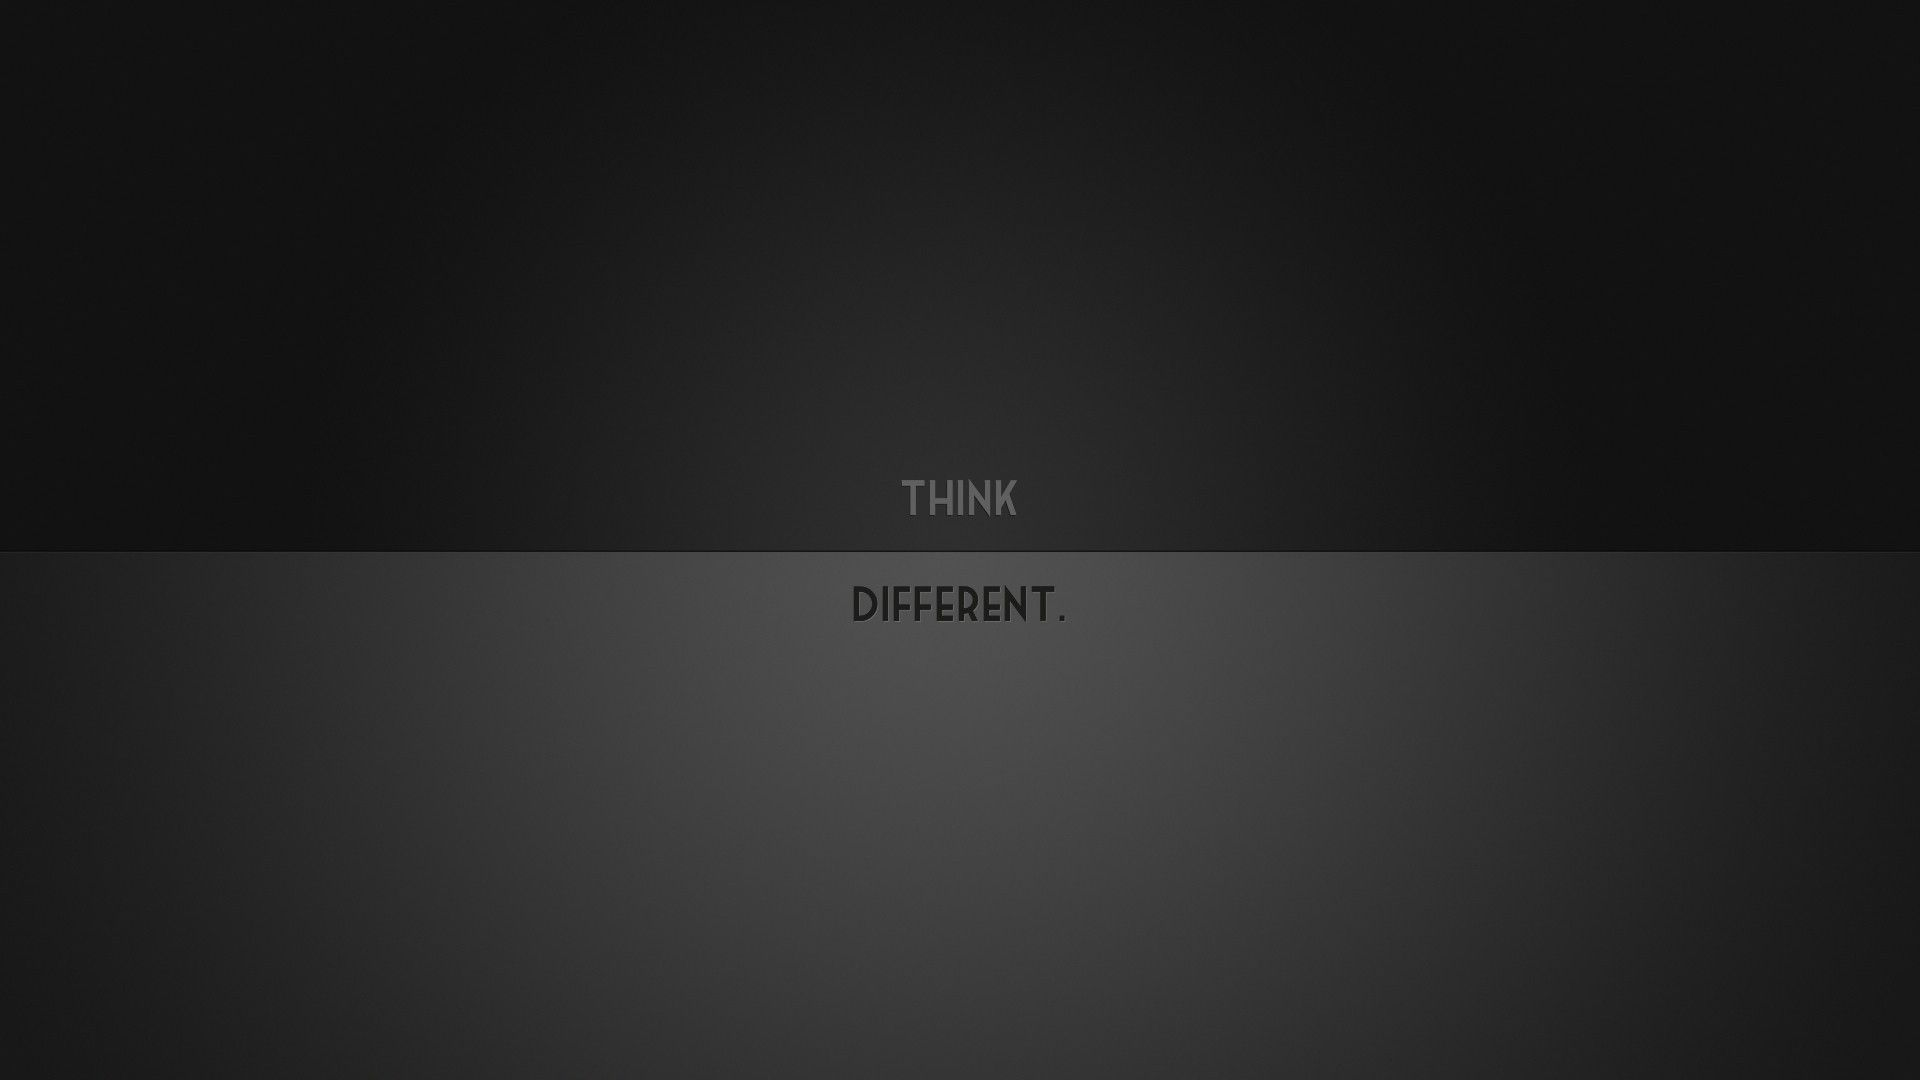 Think Different Wallpapers Hd Desktop And Mobile Backgrounds